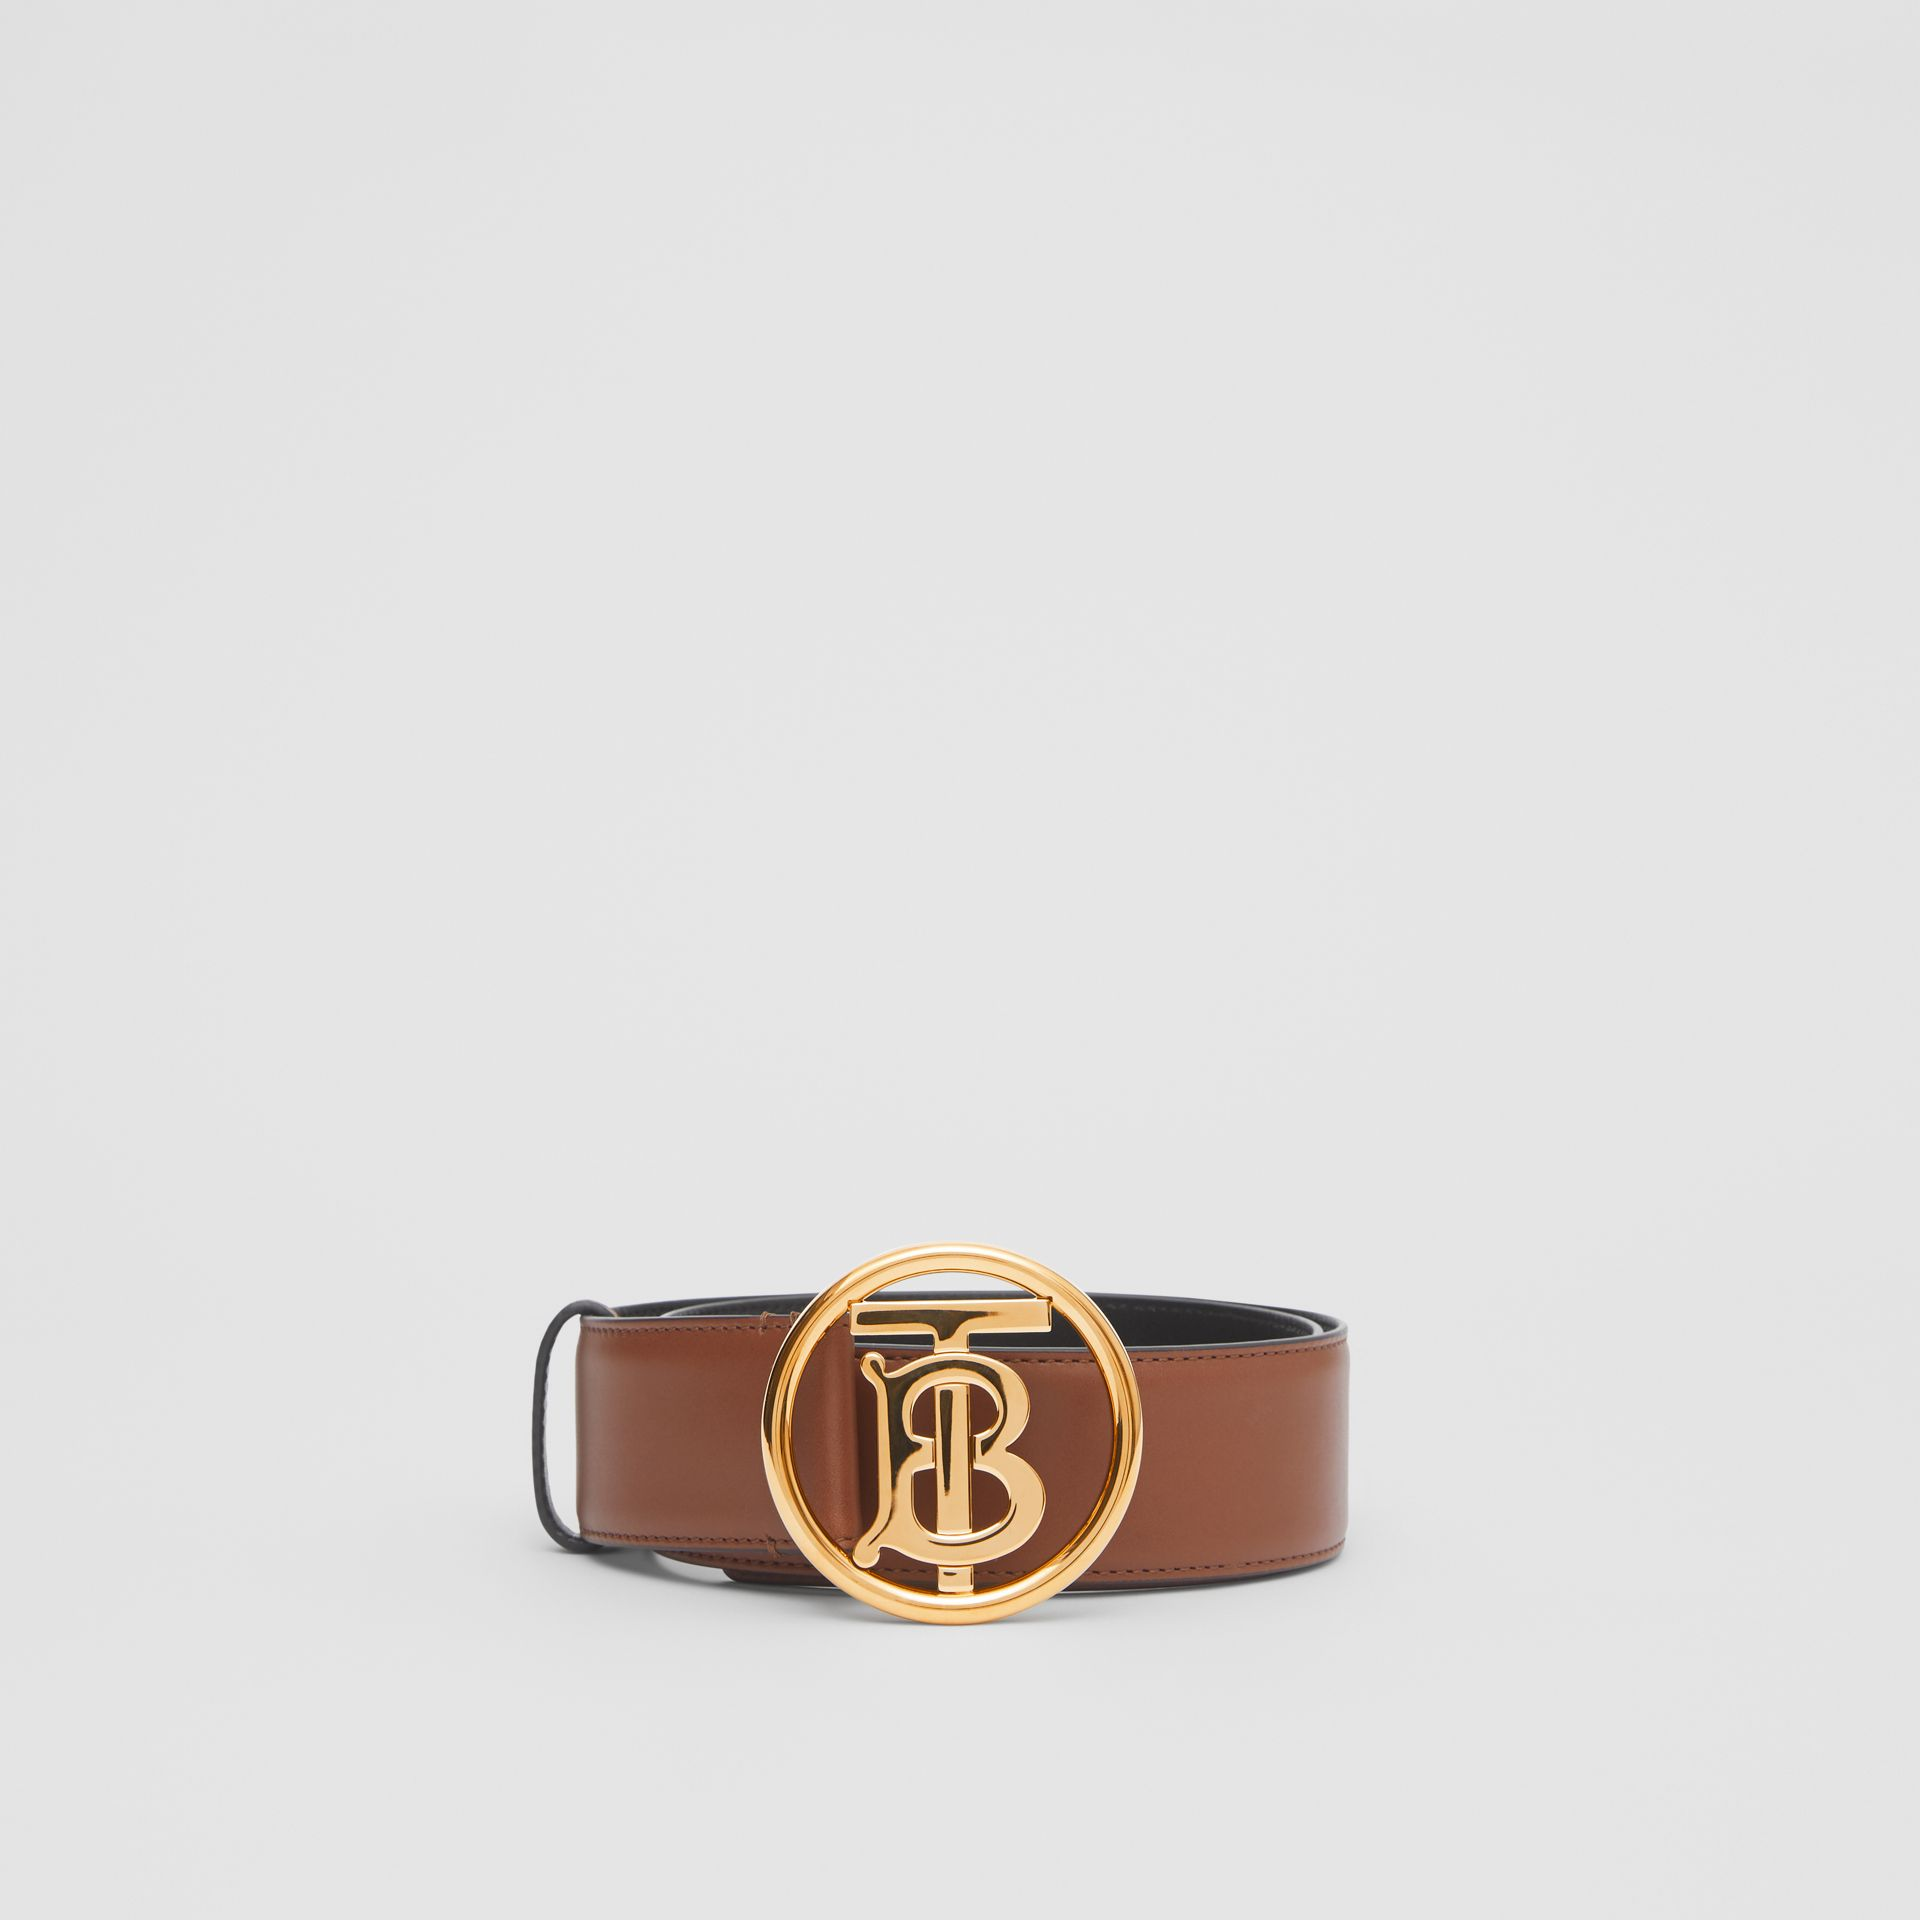 Monogram Motif Leather Belt in Tan/antique Dark Brass - Women | Burberry - gallery image 2